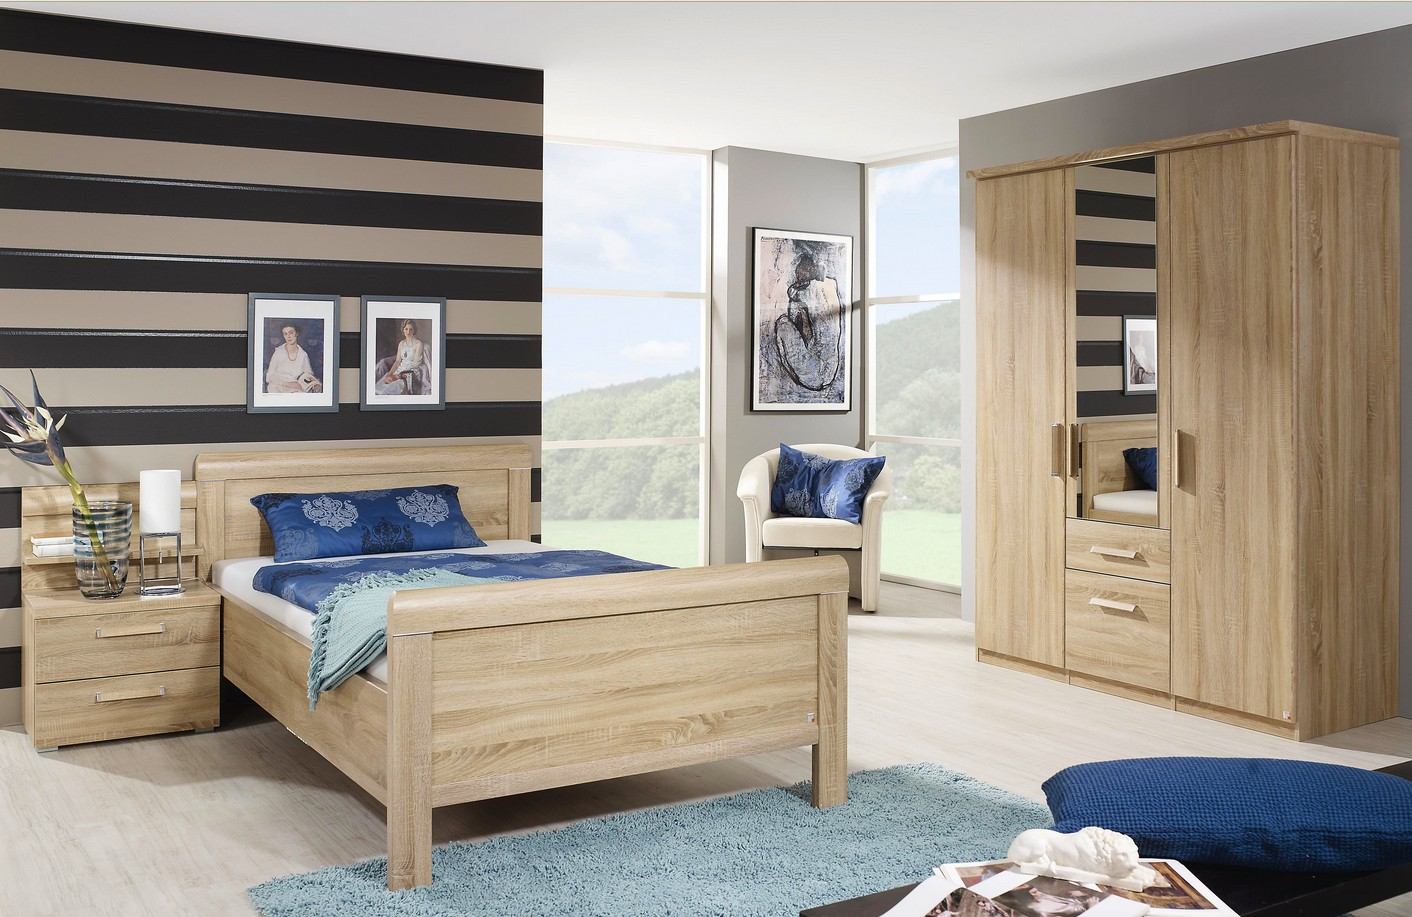 rauch dialog evelyn schlafzimmer konfigurator g nstig kaufen m bel universum. Black Bedroom Furniture Sets. Home Design Ideas